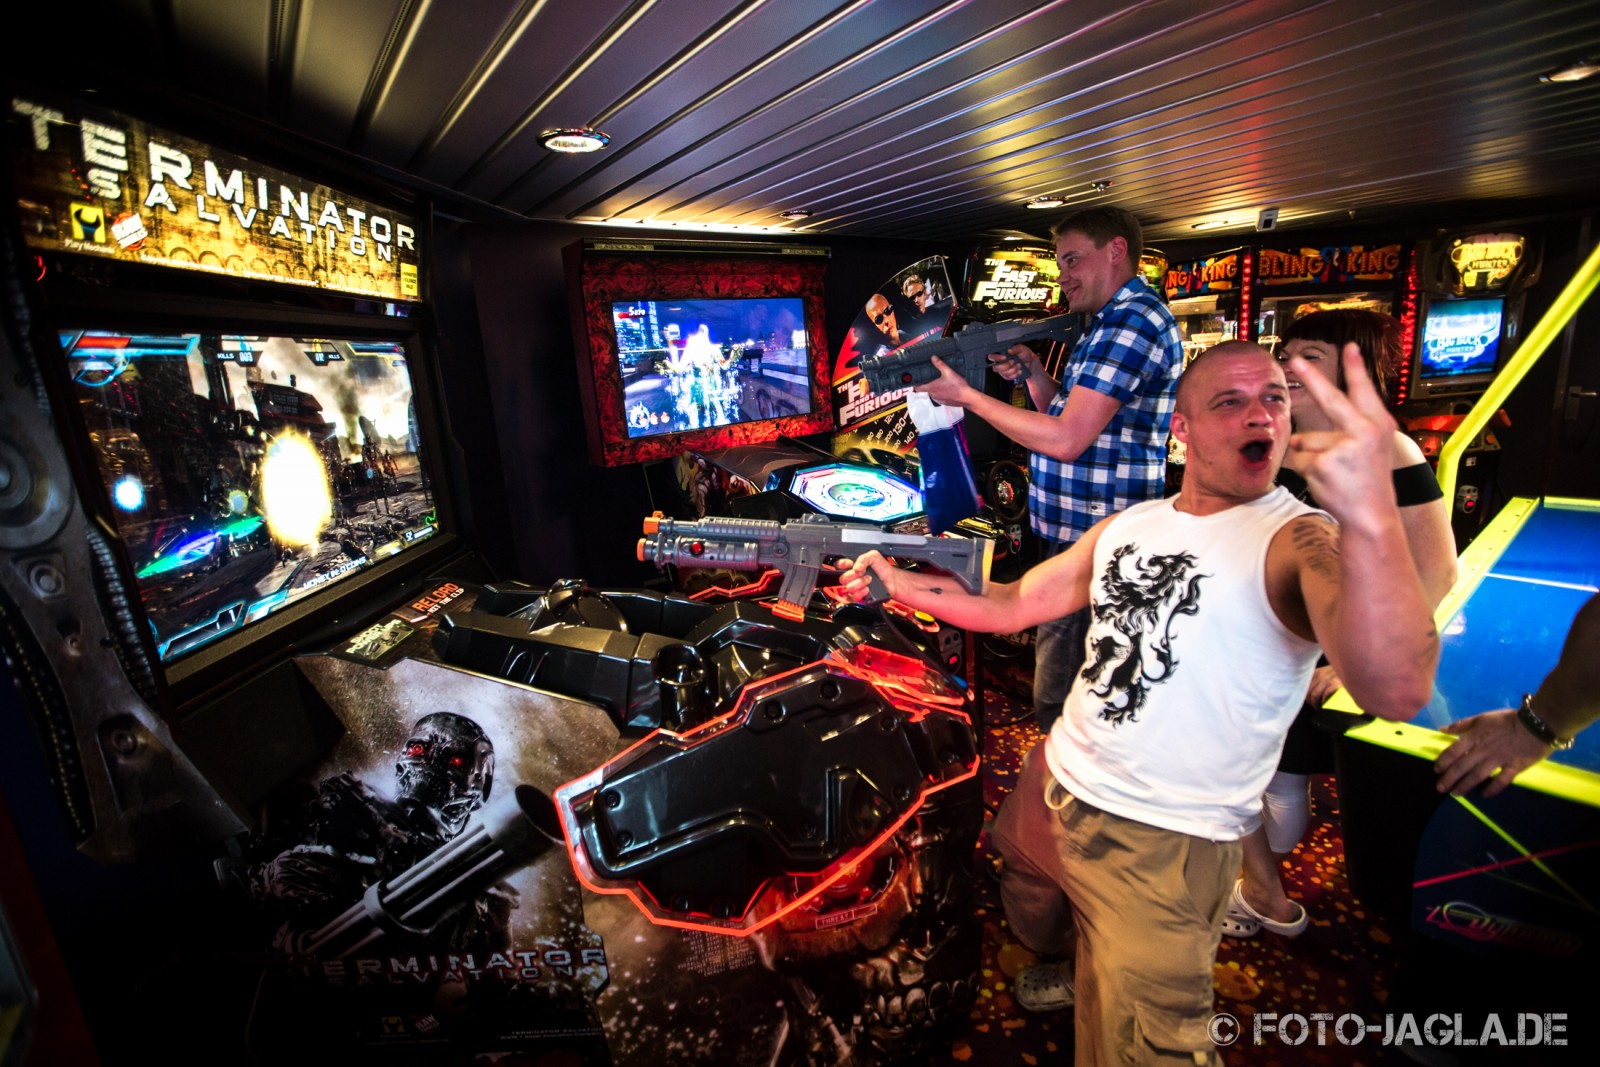 70000 Tons of Metal 2013 ::. Amusement room ::. http://www.foto-jagla.de